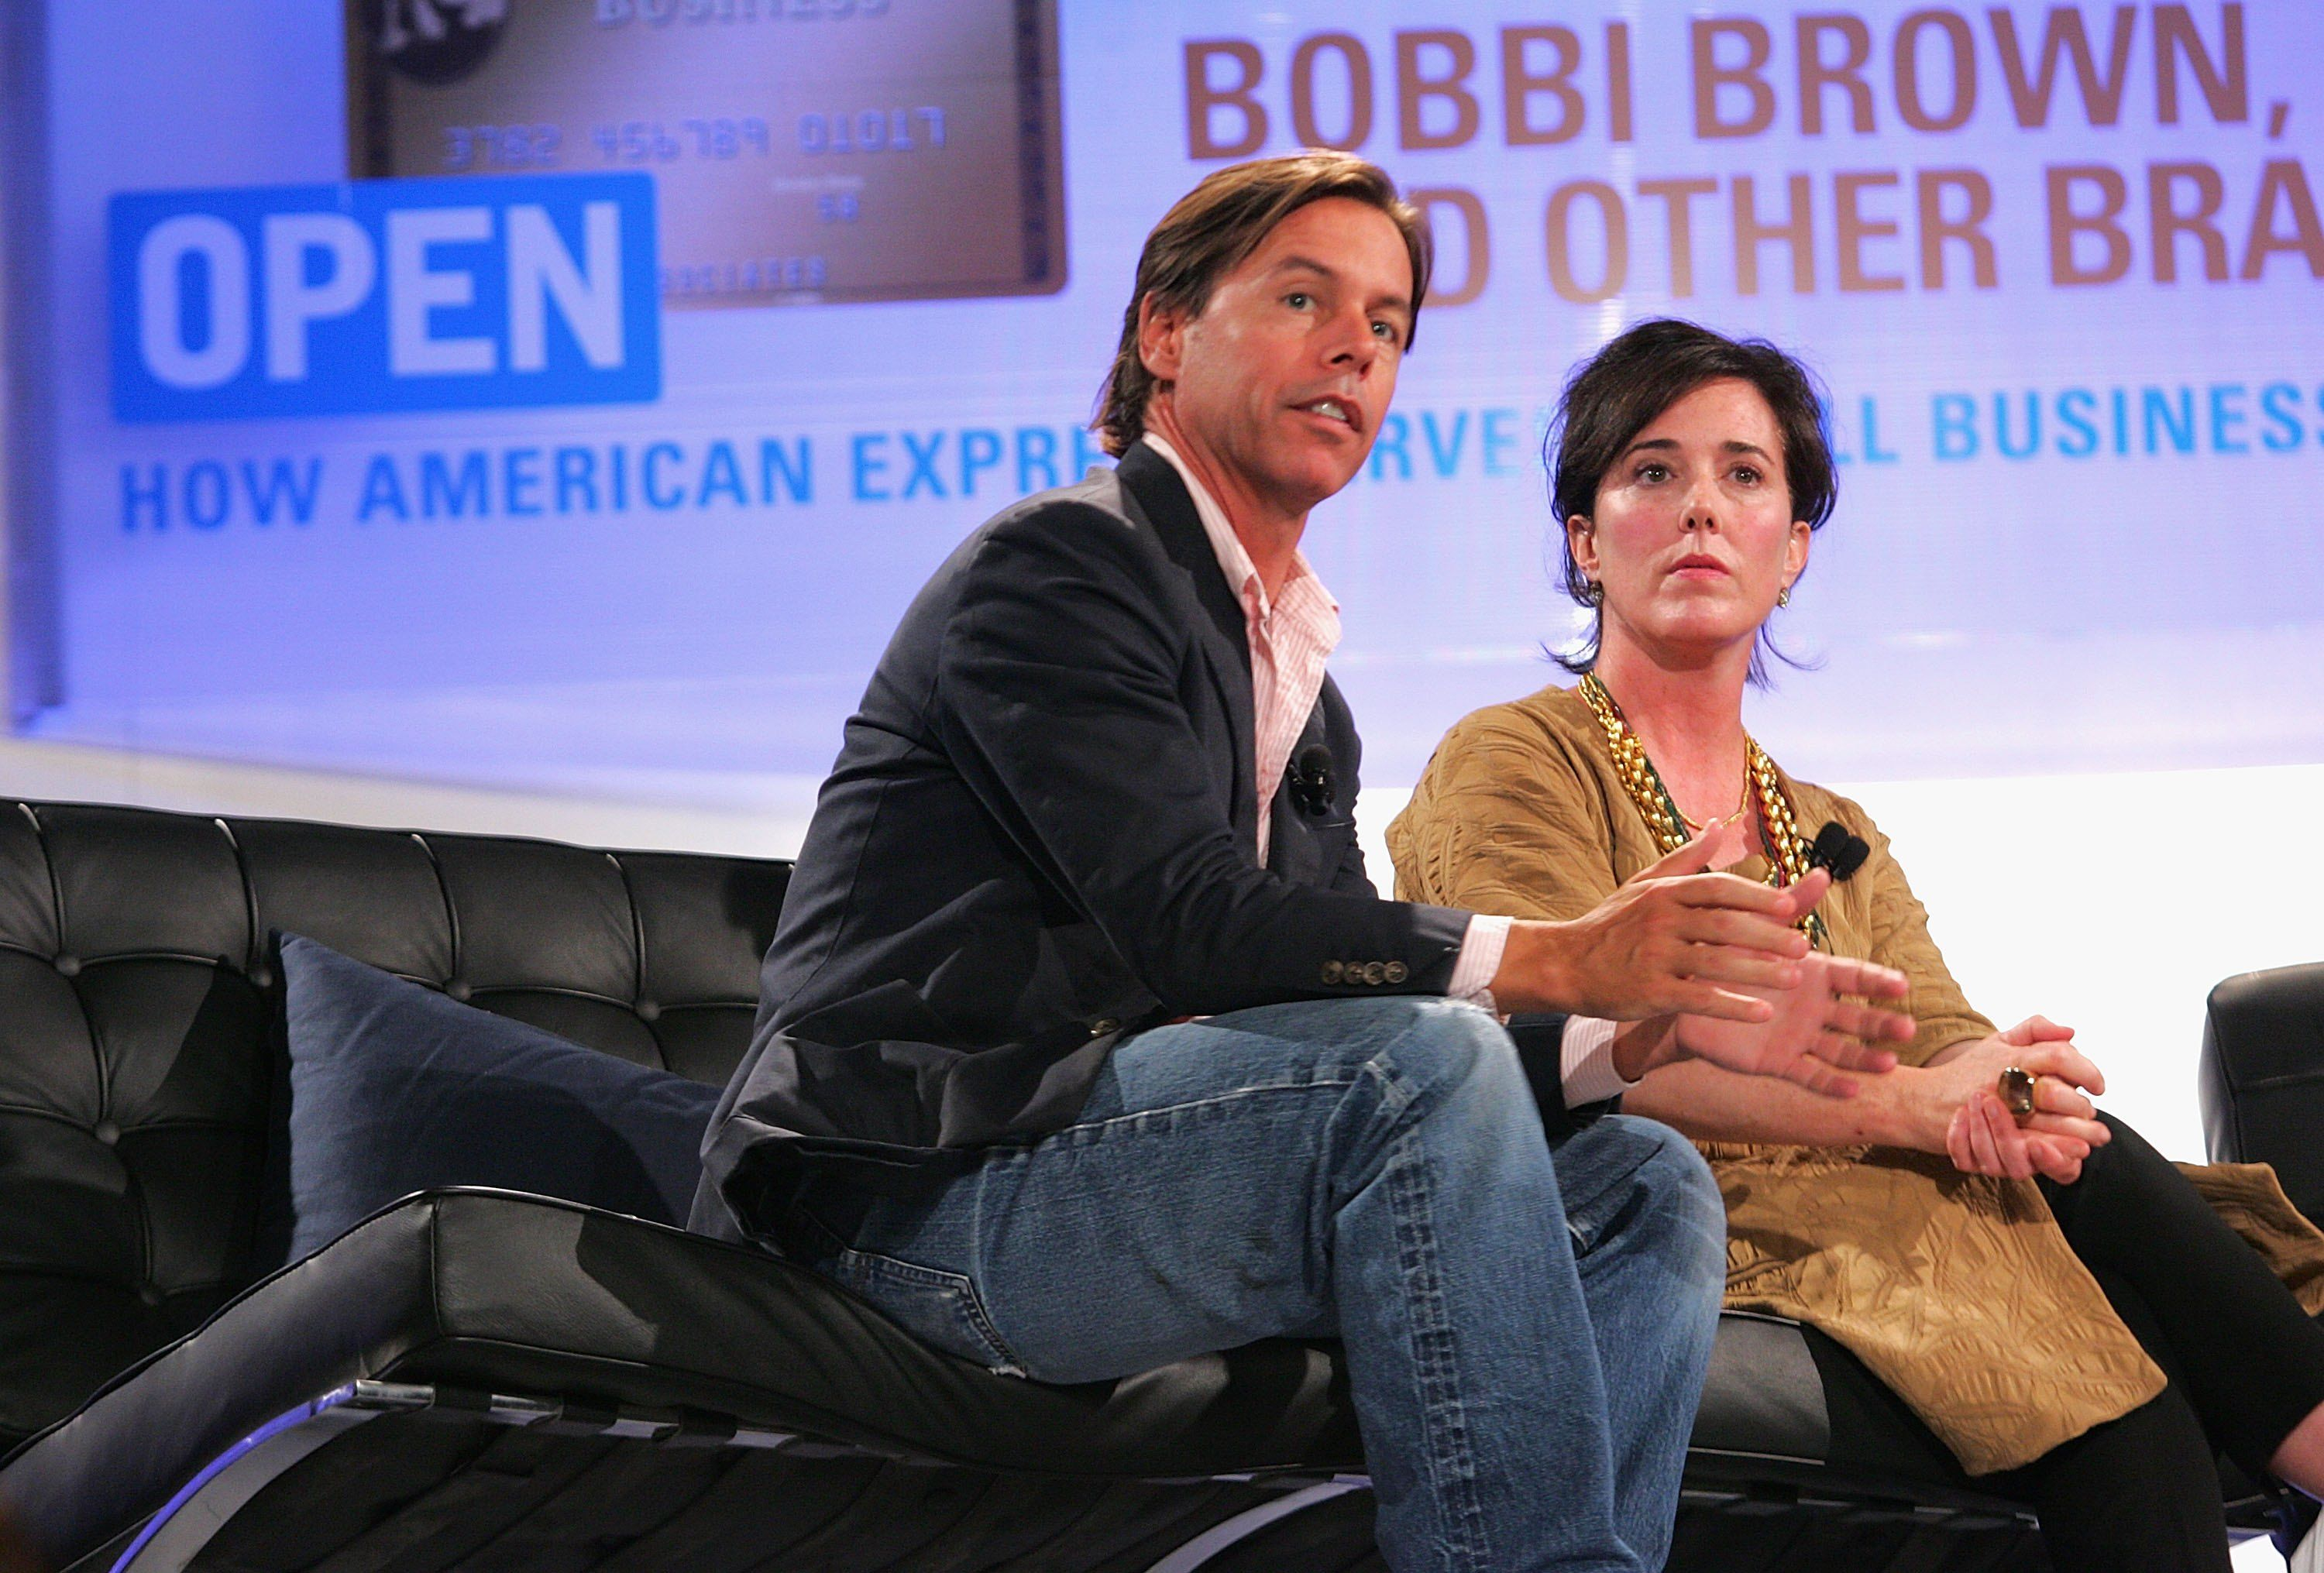 """Andy Spade, CEO and Creative Director of Kate Spade, and designer Kate Spade attend OPEN from American Express' """"Making a Name for Yourself"""" at Nokia Theater July 27, 2006 in New York City."""